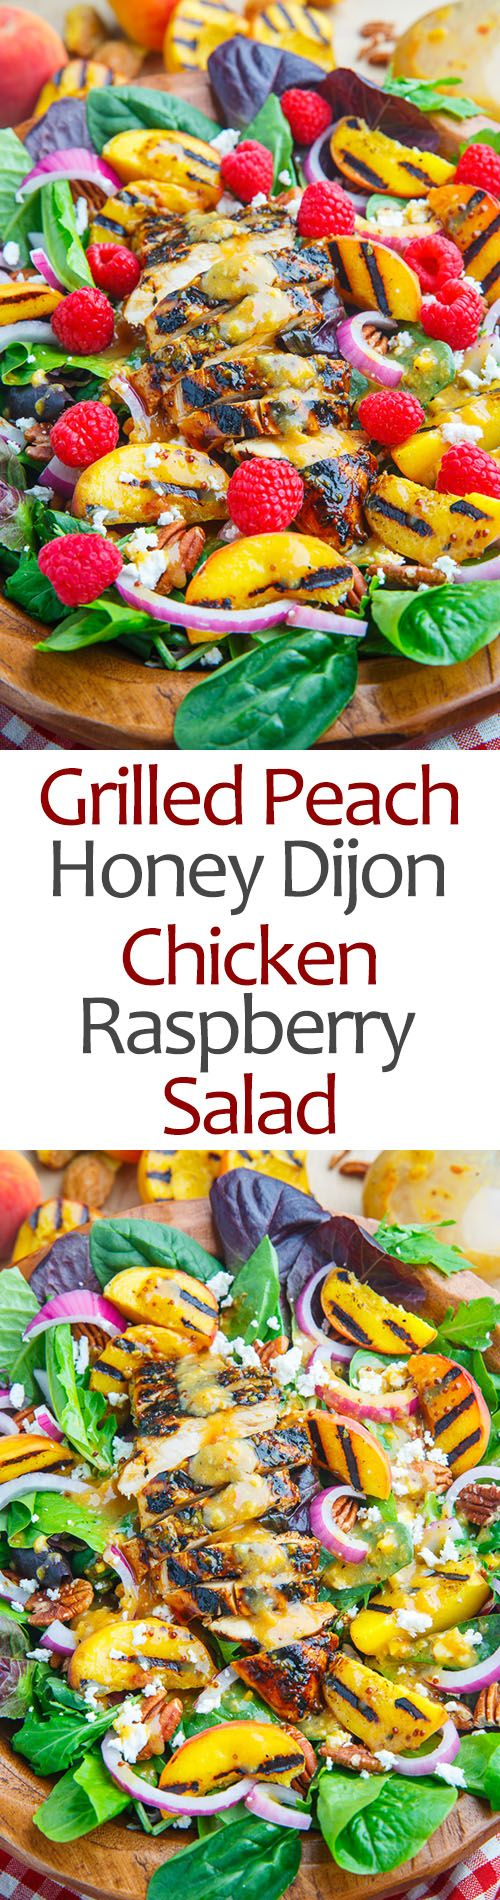 Grilled Peach and Honey Dijon Chicken Salad with Raspberries, Goat Cheese and…